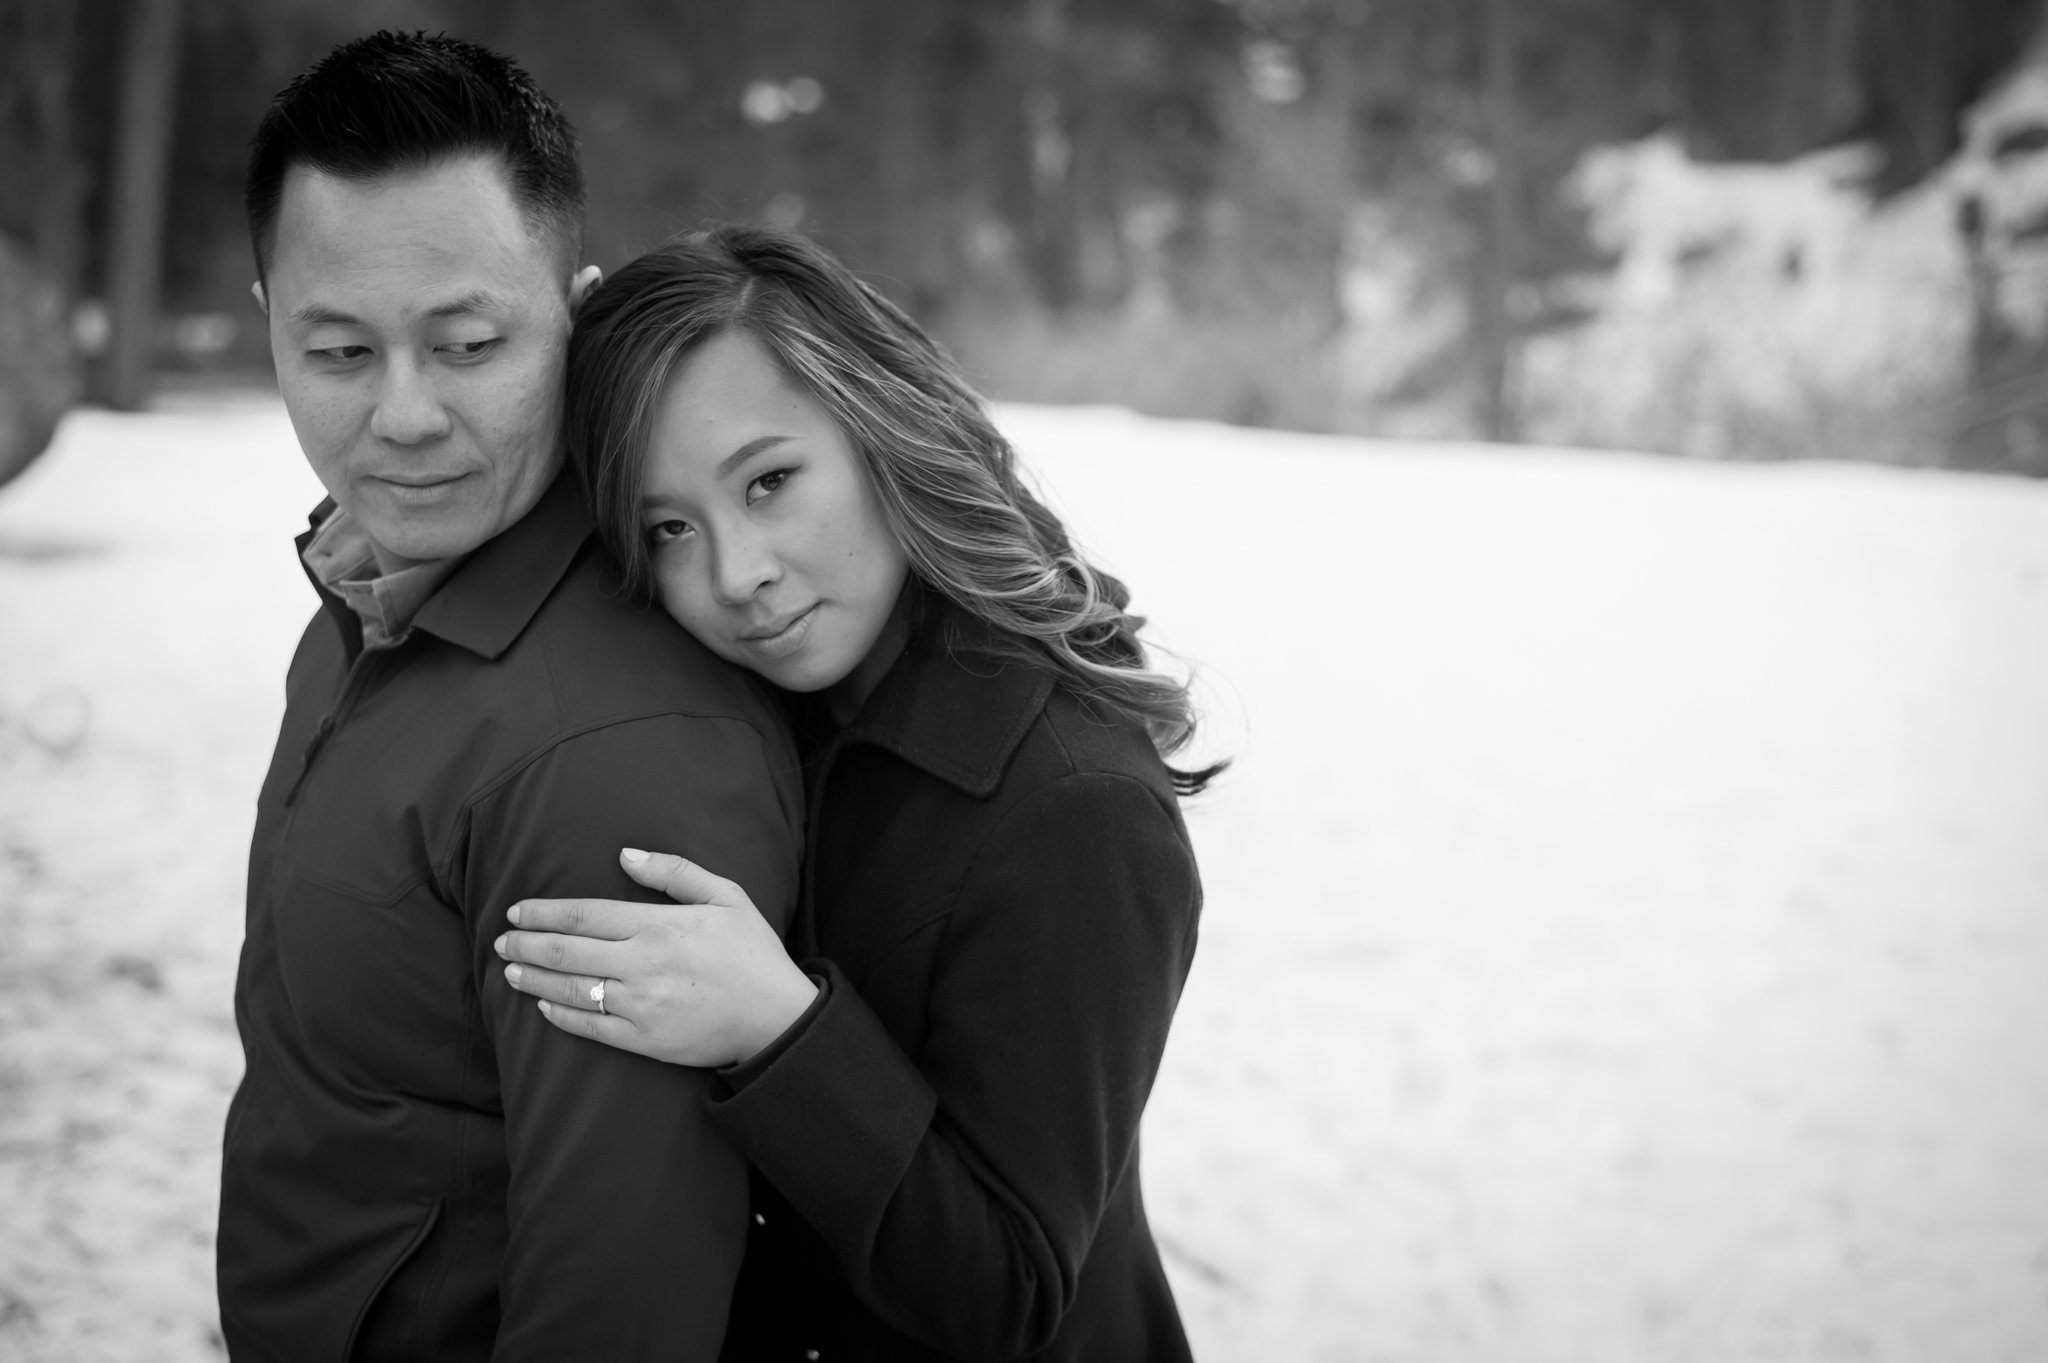 Mike and Melody s Big Bear Engagement-Mike and Melody E Session Final-0243.jpg